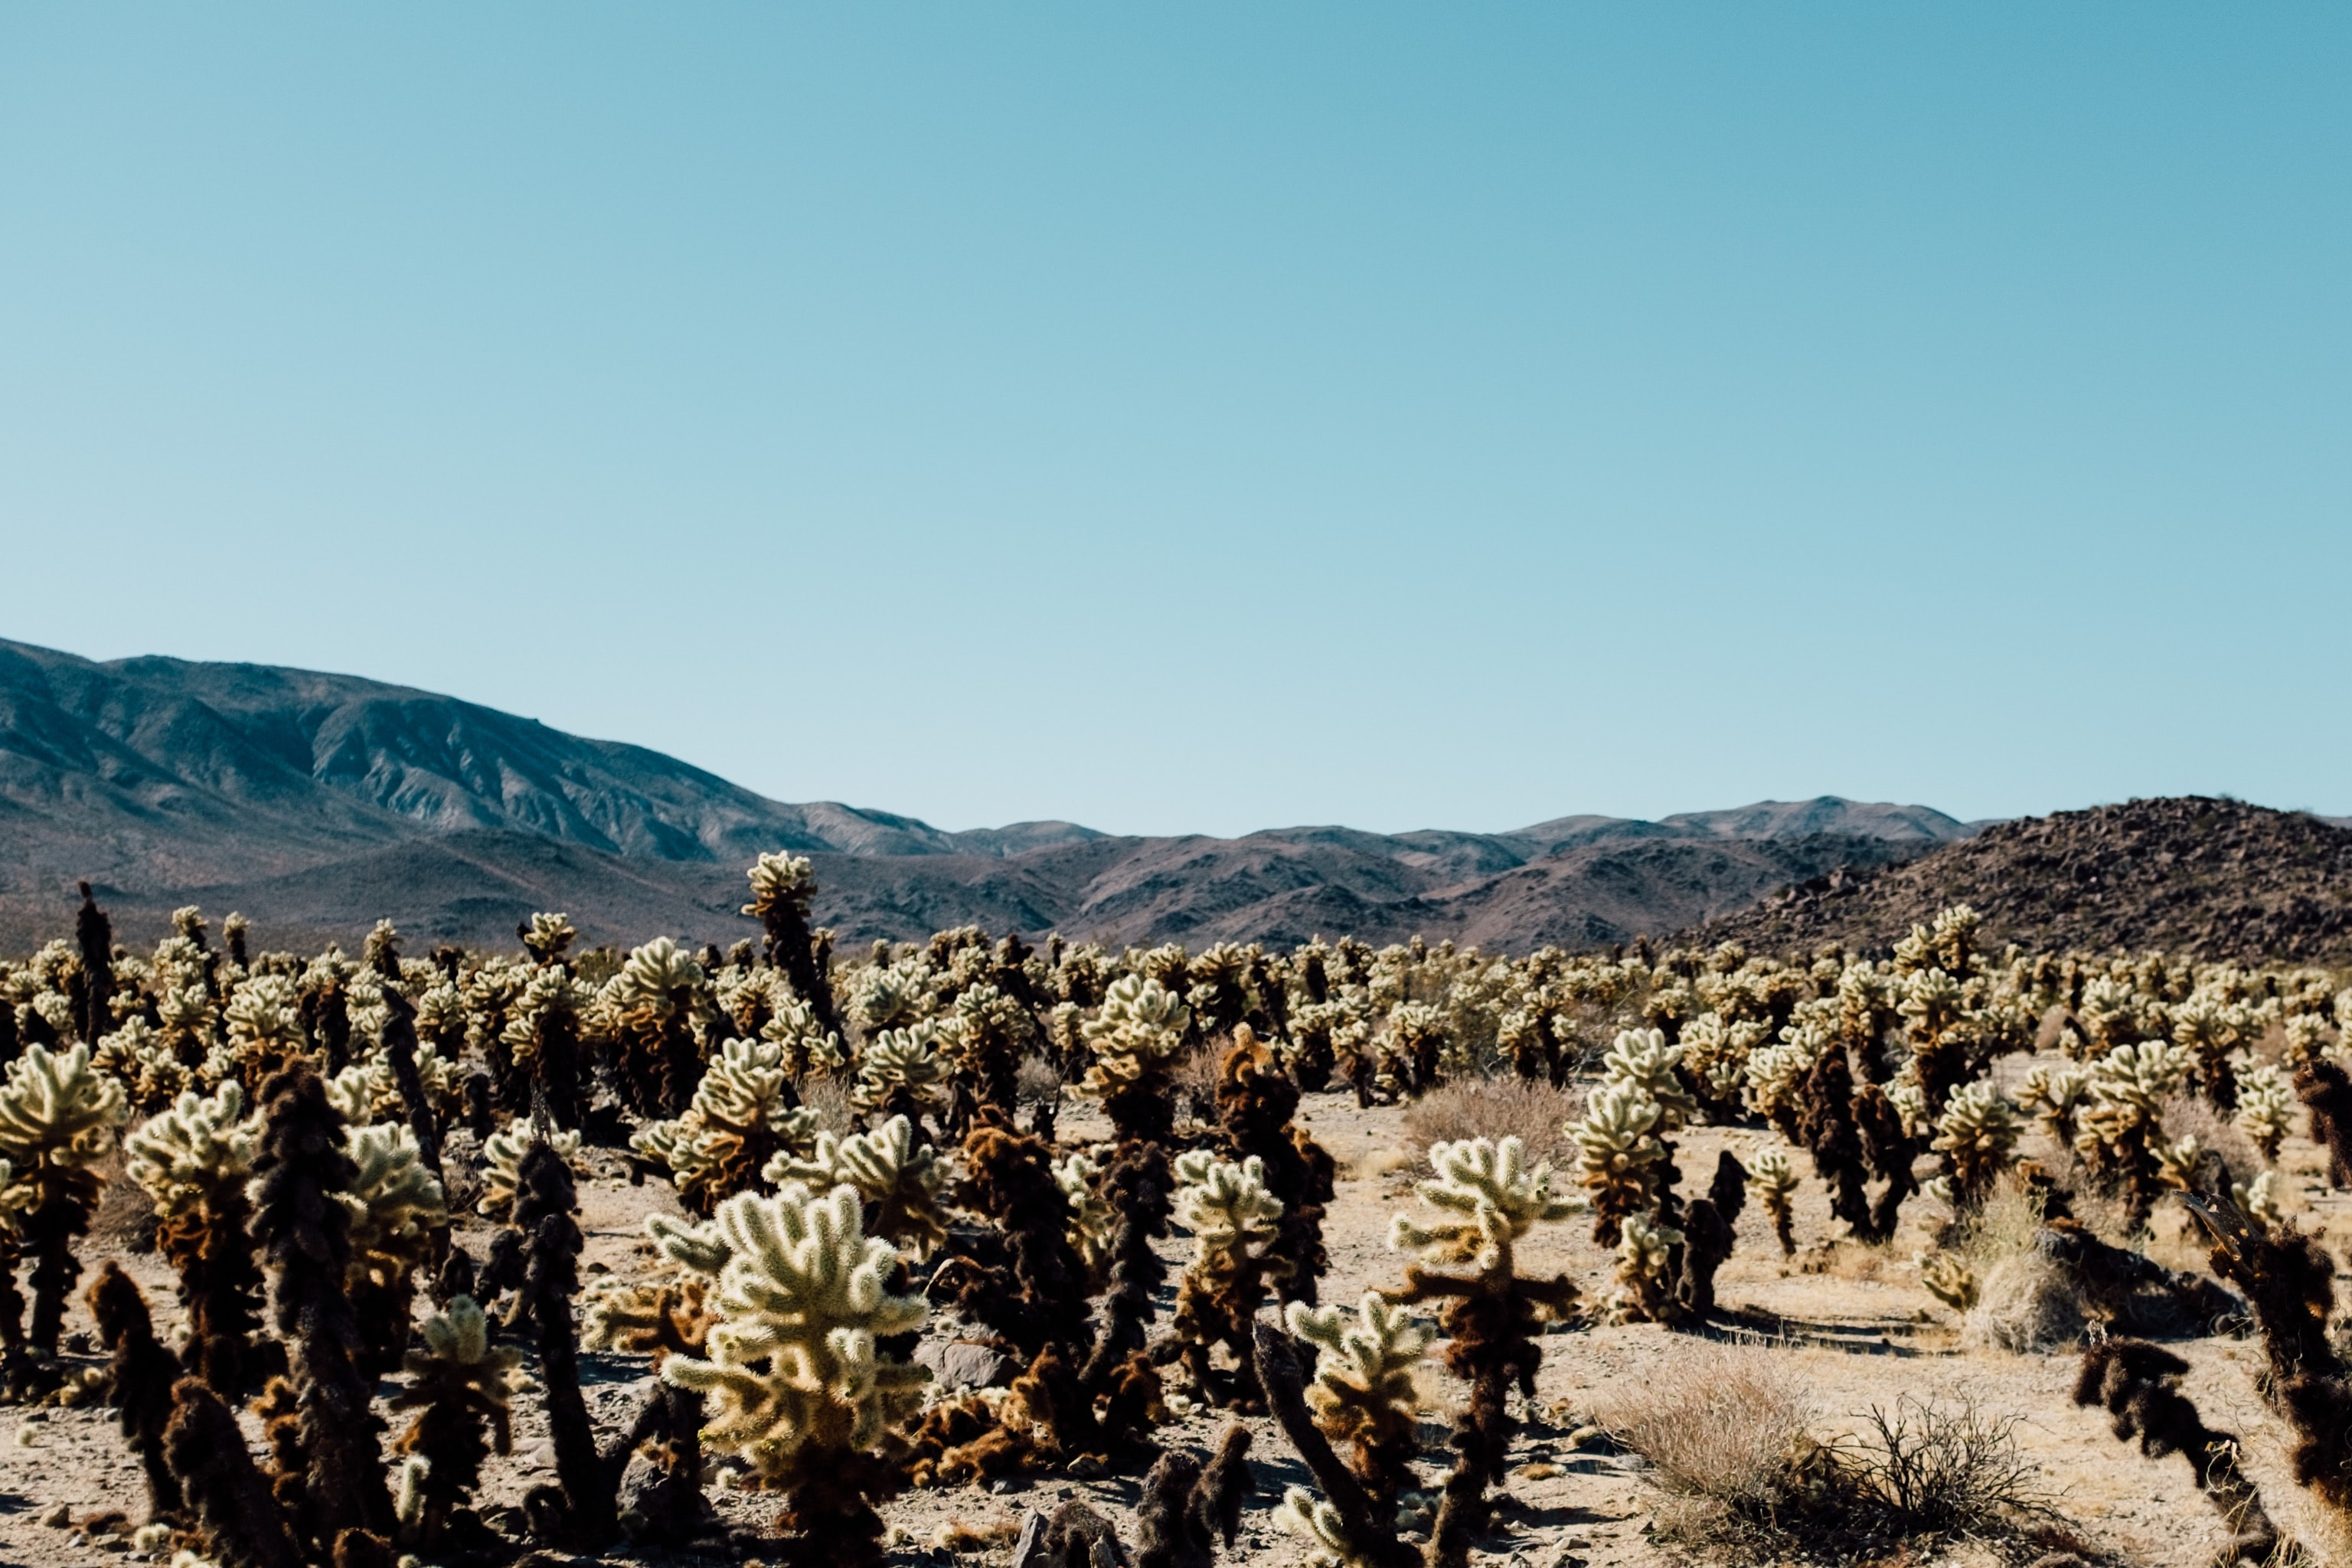 landscape photography of cactus